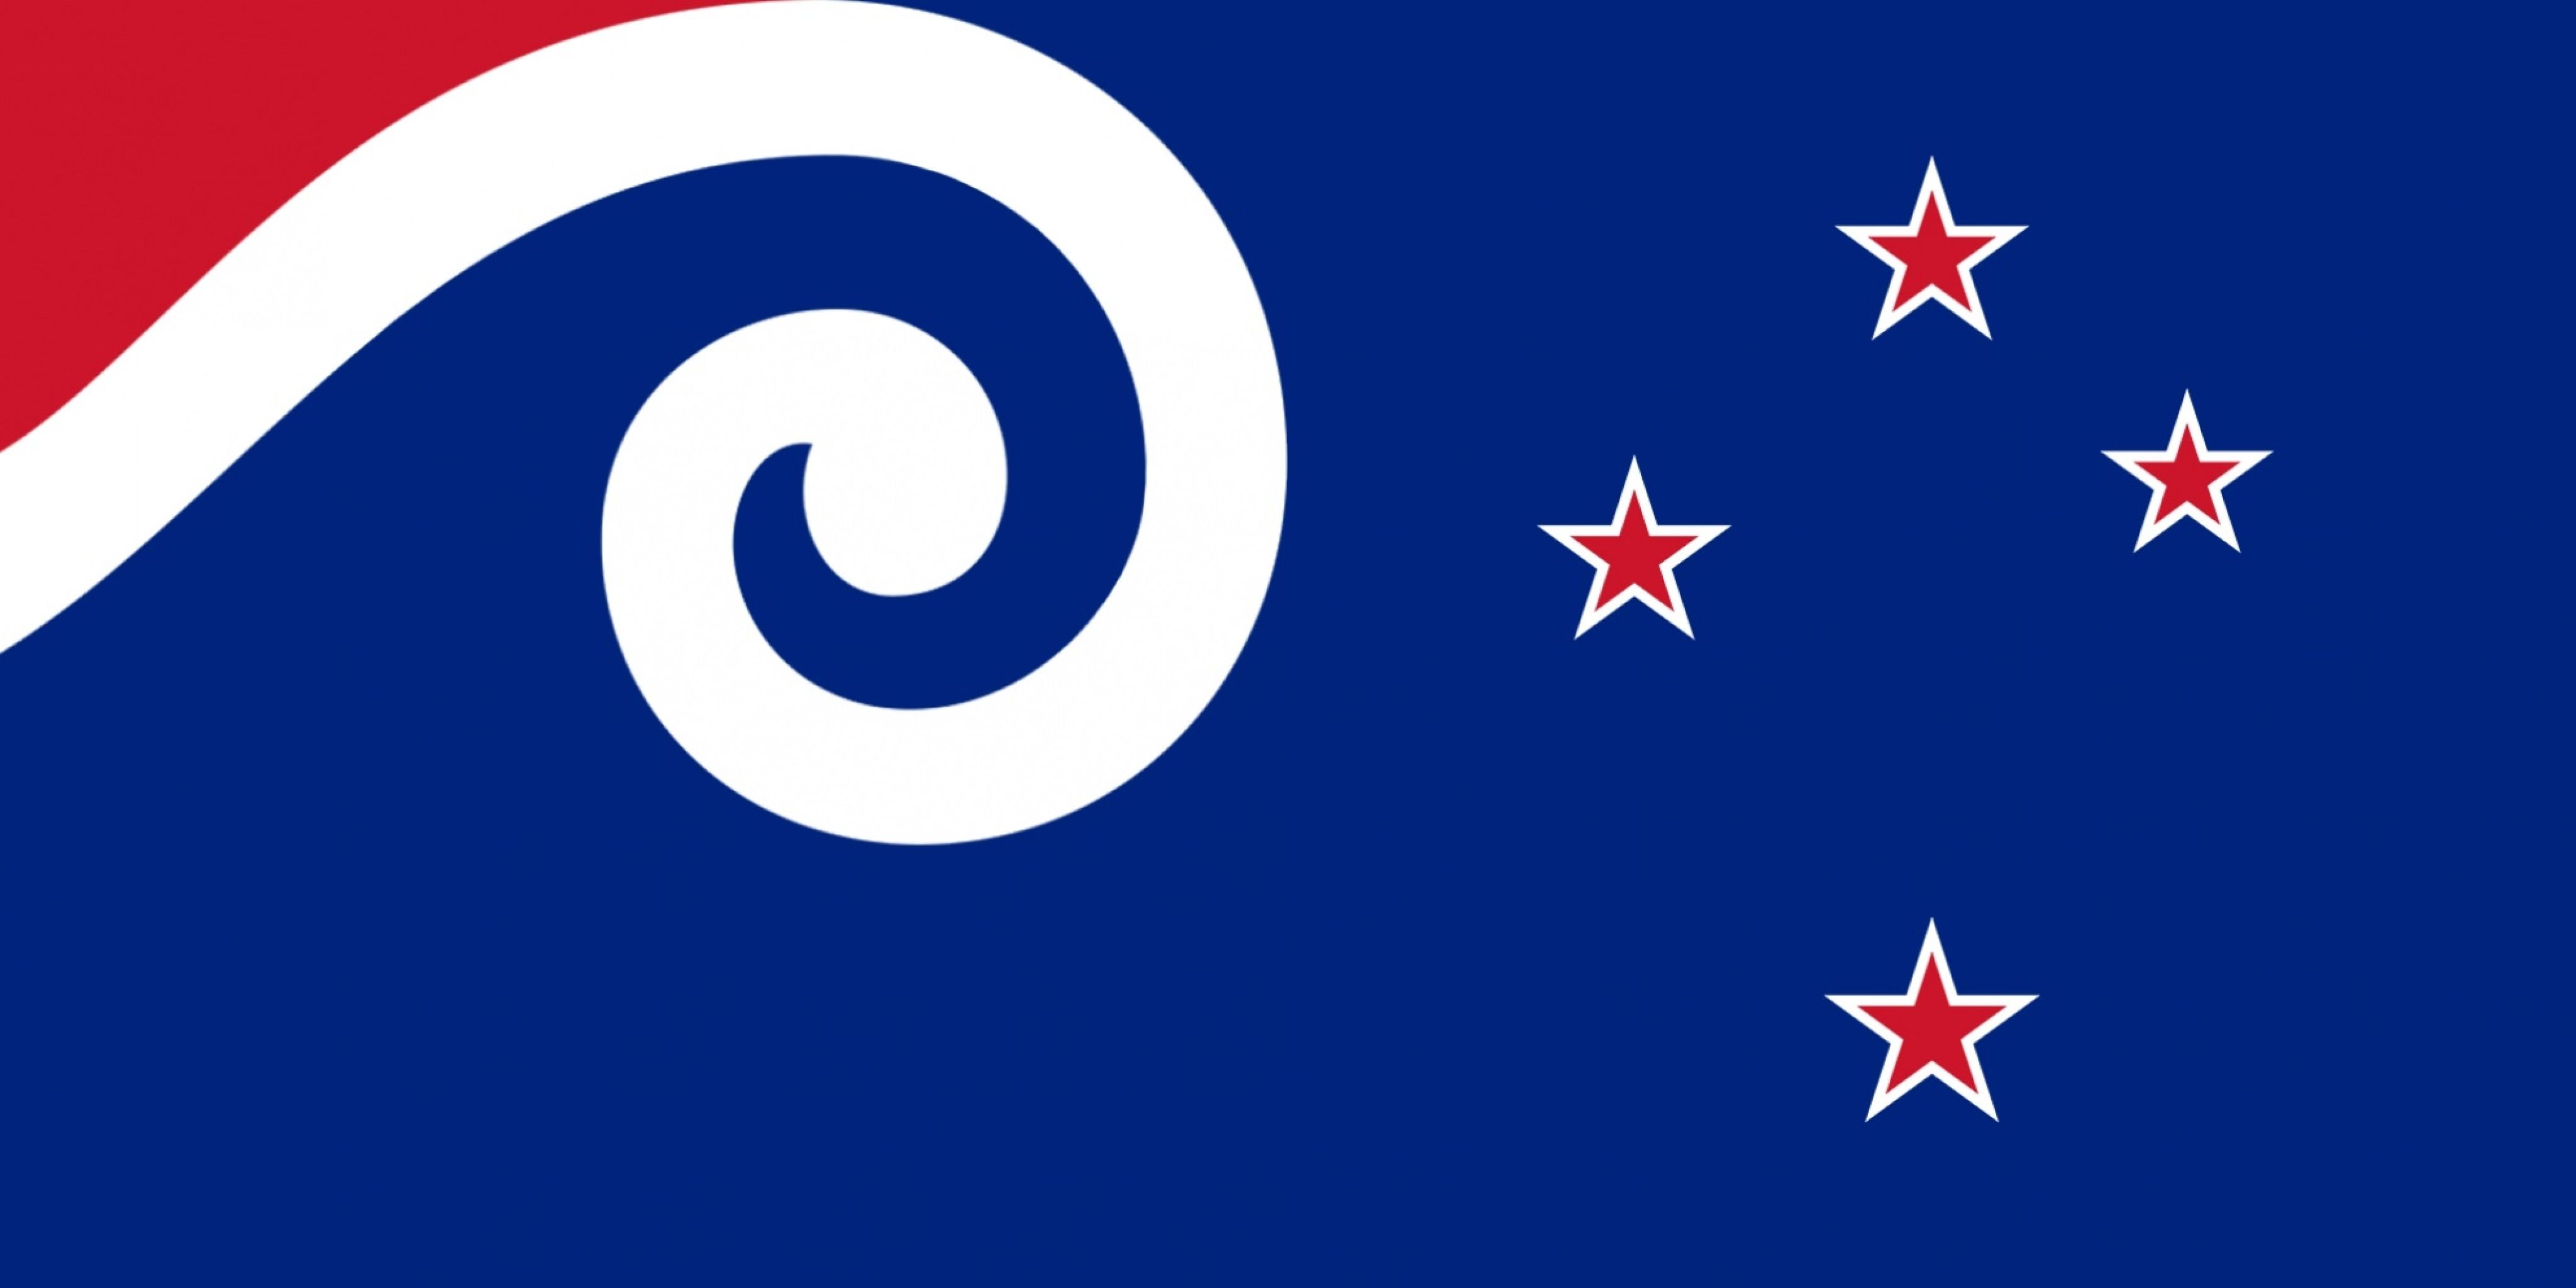 Best New Australian Flag Design Ideas Pictures - Decorating ...